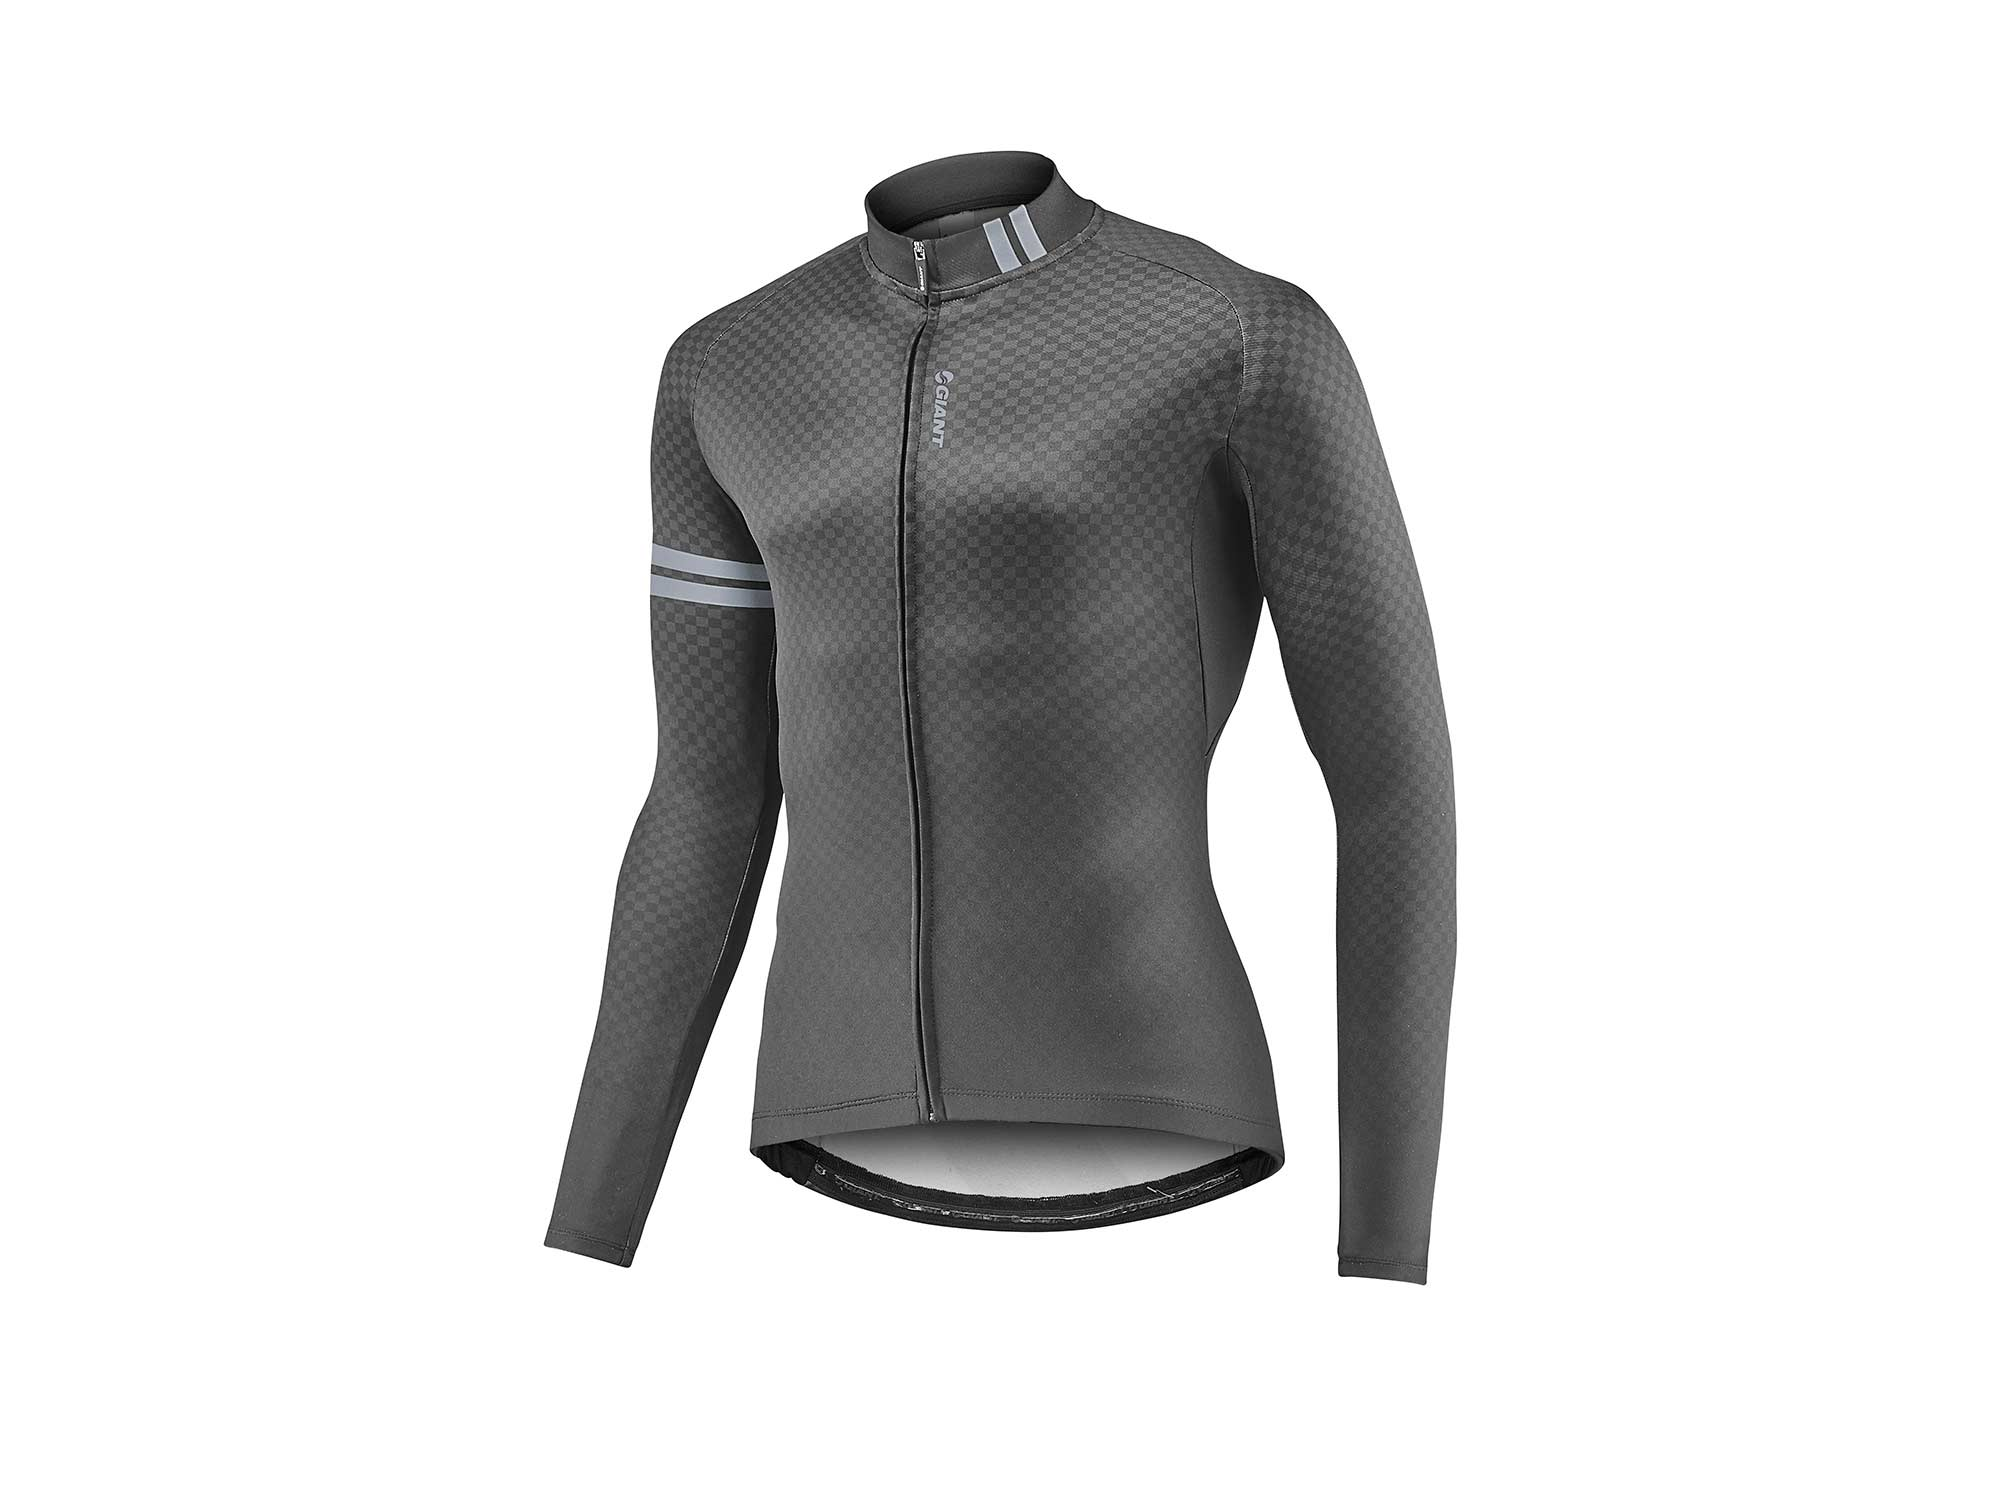 2019 Giant Podium Long Sleeved Mid-Thermal Jersey in Black Gray 4ba3775ef